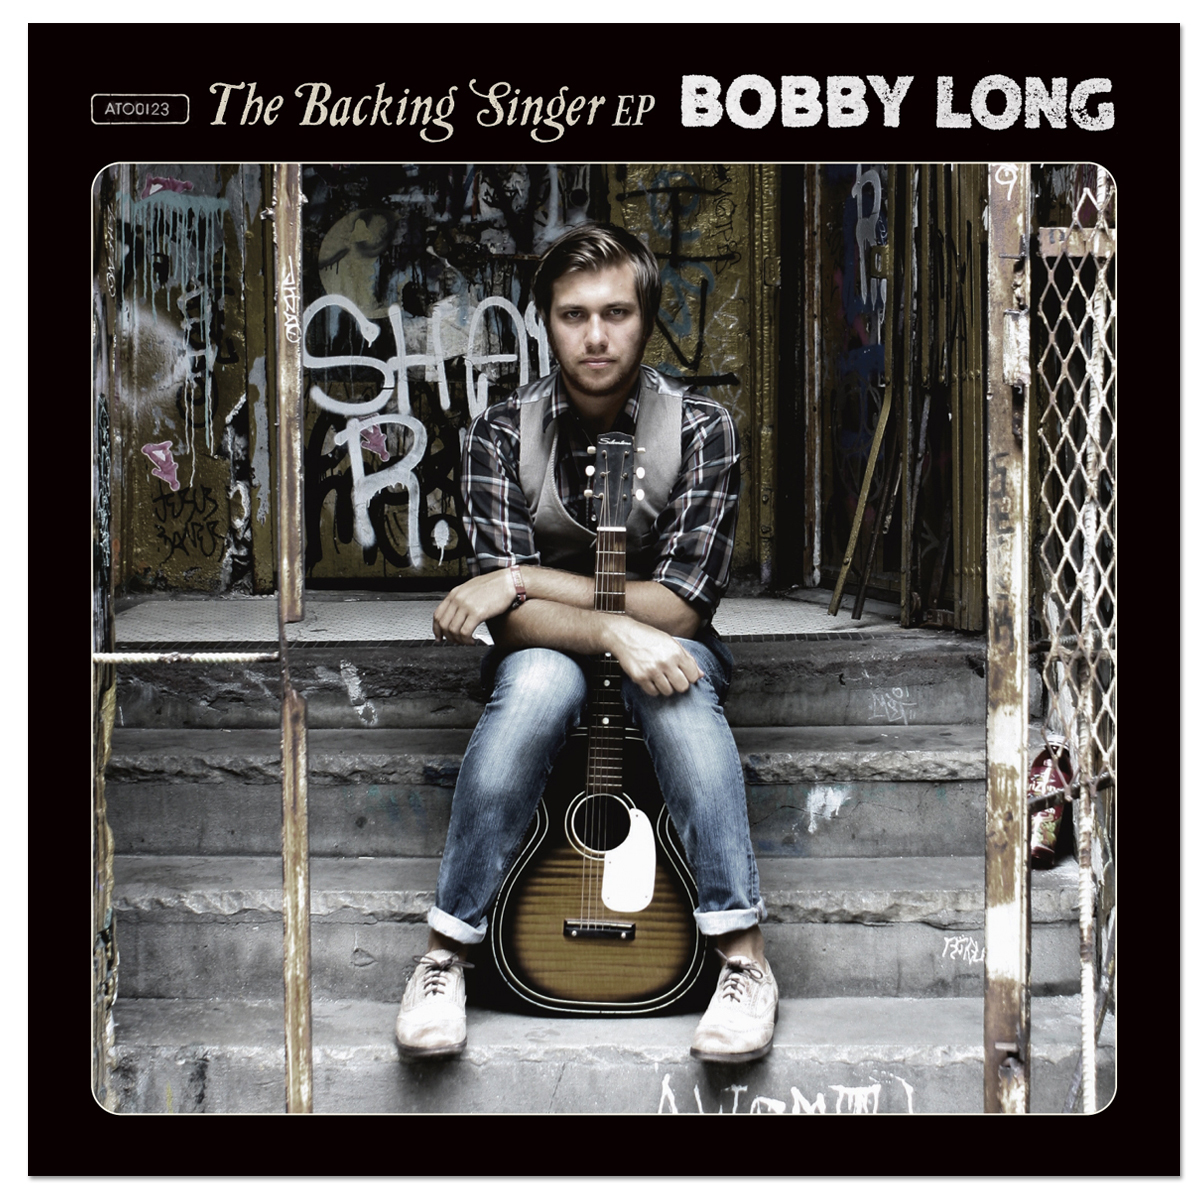 Bobby Long - The Backing Singer EP